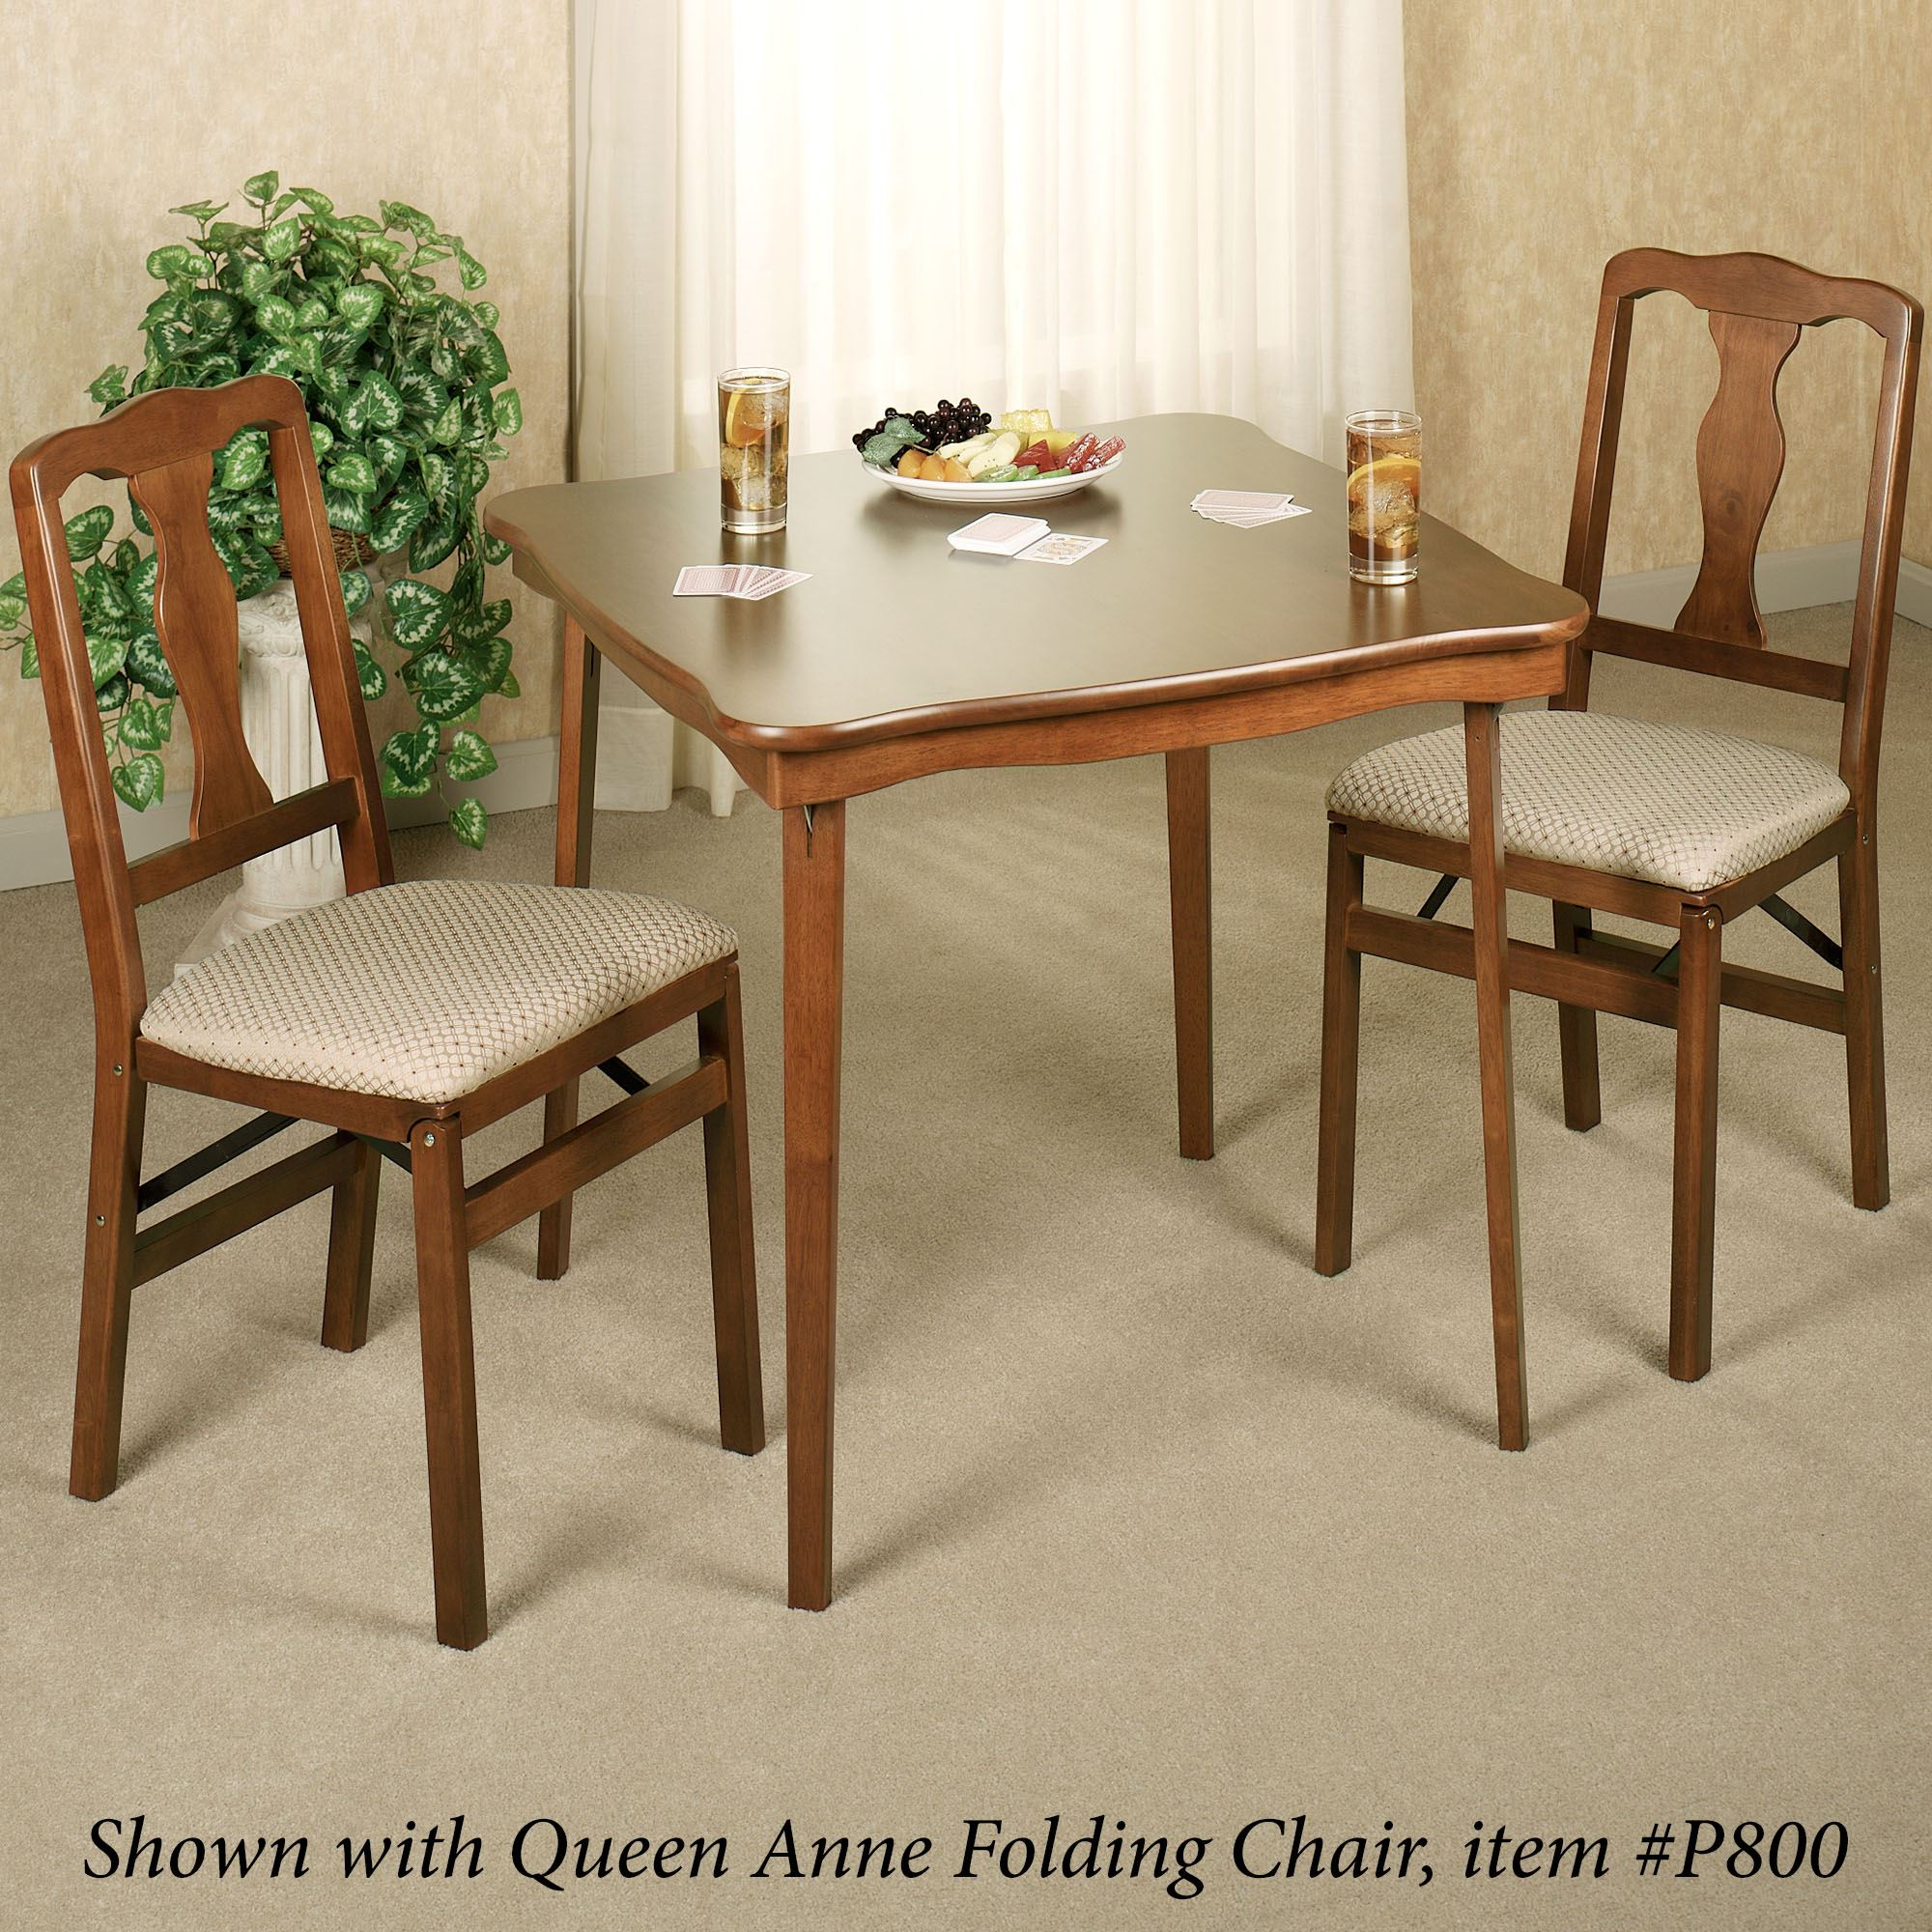 Well-known Scalloped Folding Card Table LI69